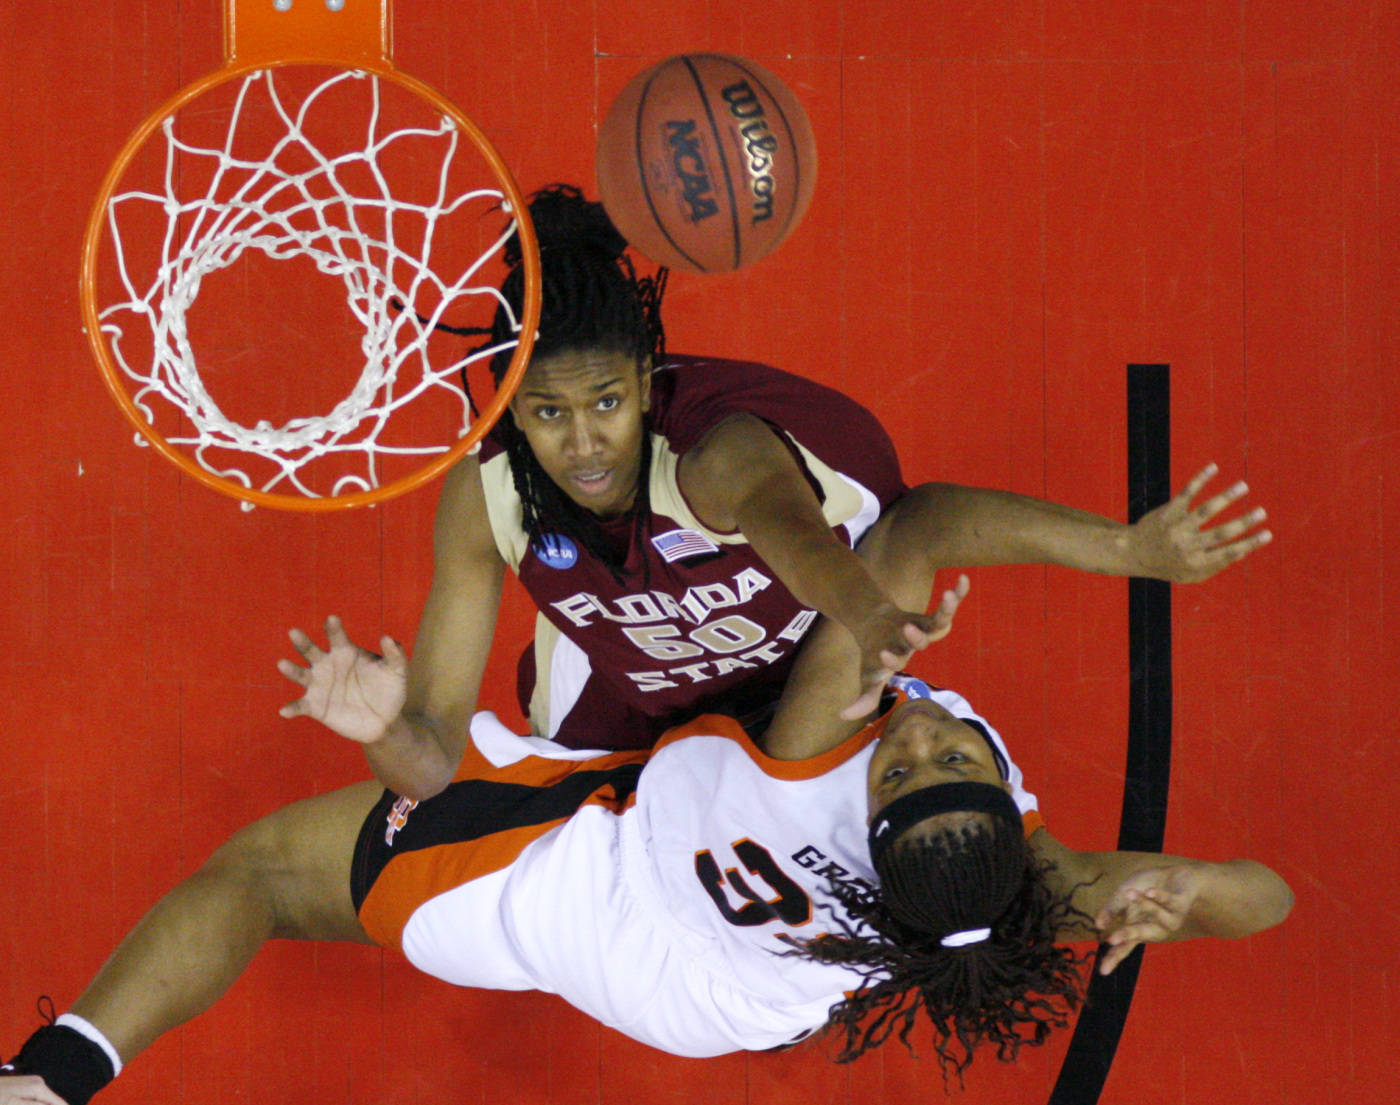 Oklahoma State's Danielle Green shoots over Florida State's Jacinta Monroe, top, during the first half of an NCAA women's basketball tournament game, Monday, March 24, 2008, in Des Moines, Iowa. (AP Photo/Charlie Neibergall)